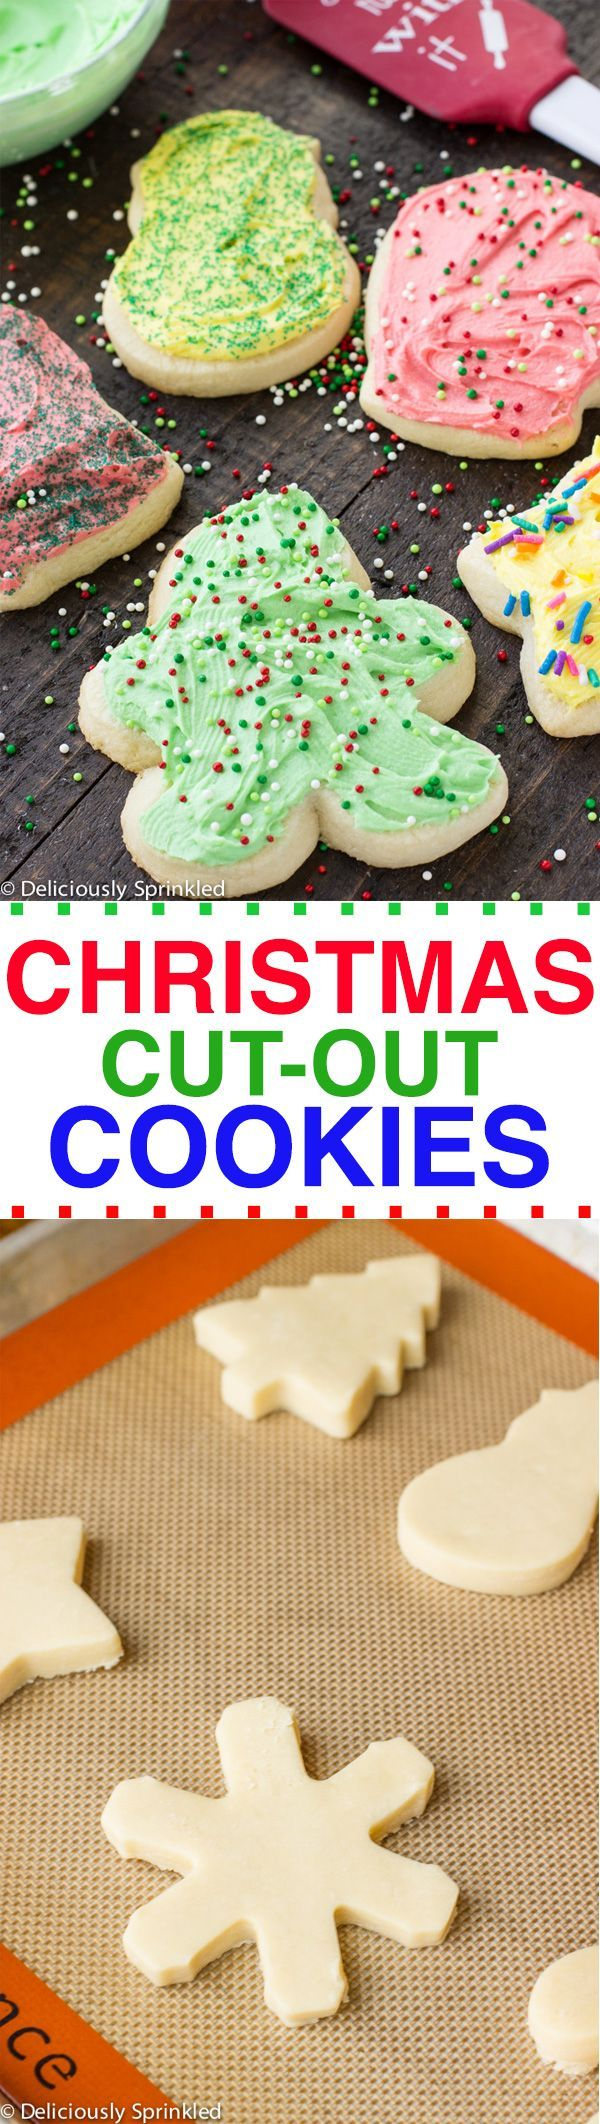 The Best Christmas Cut-Out Cookies EVER! | Cookies | Pinterest ...